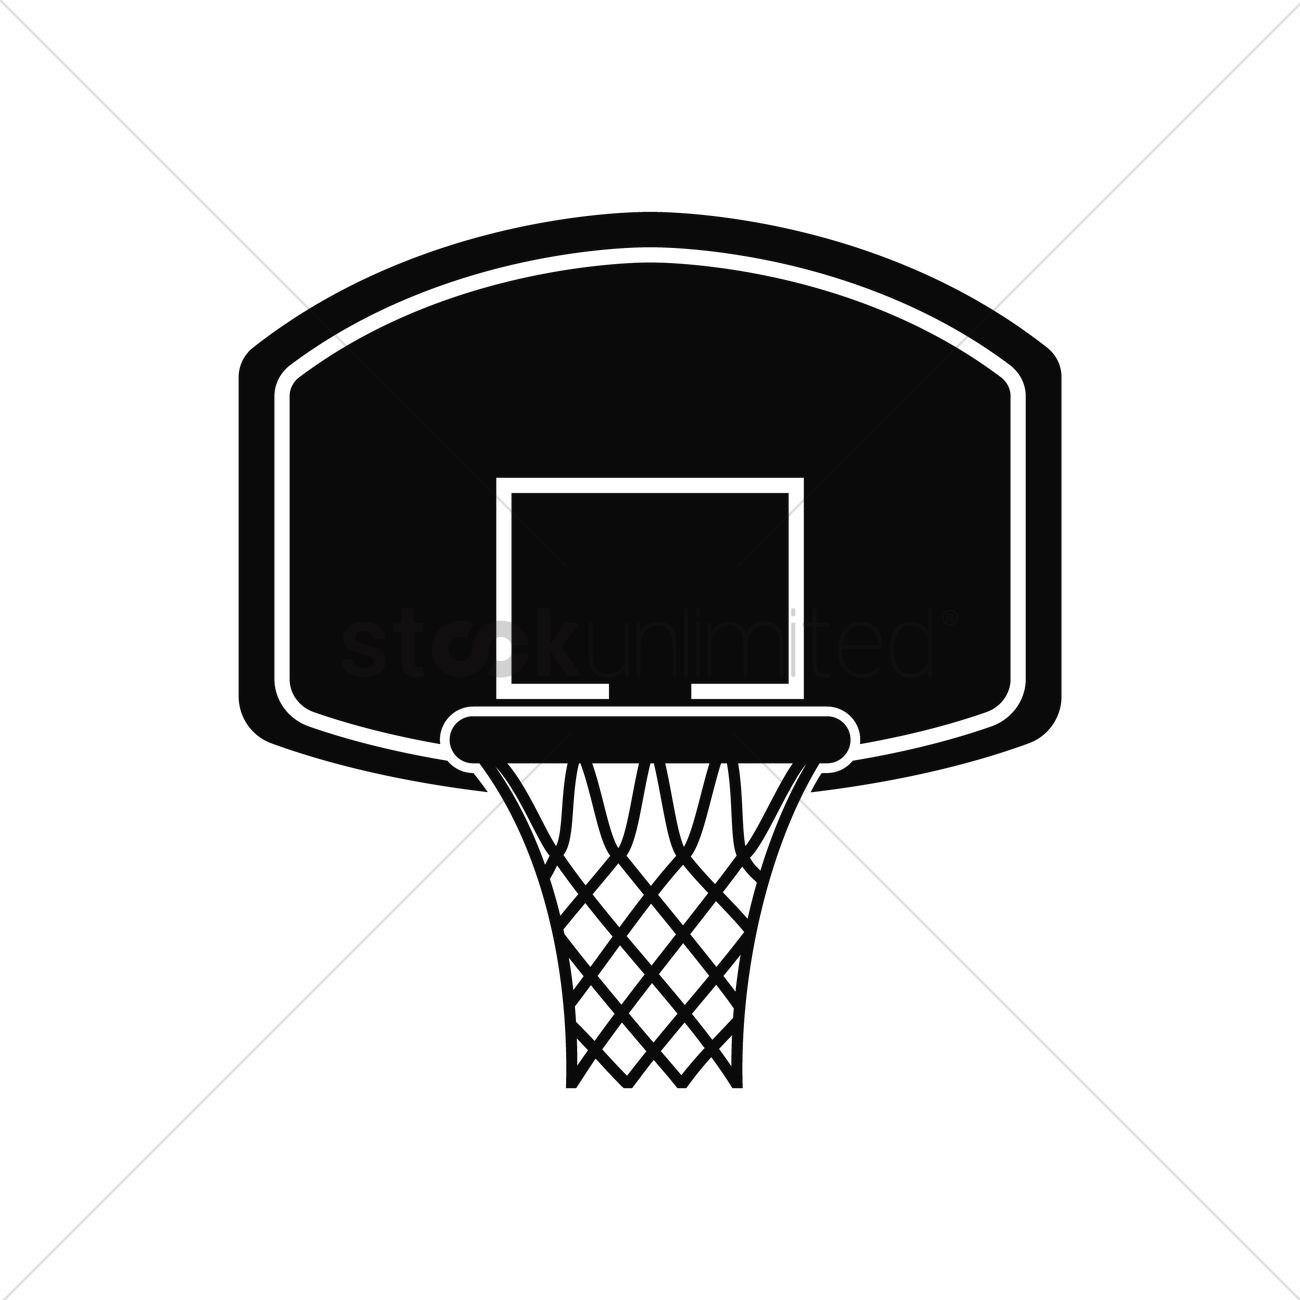 Basketball hoop vector image 1979513 stockunlimited for Free basketball vector